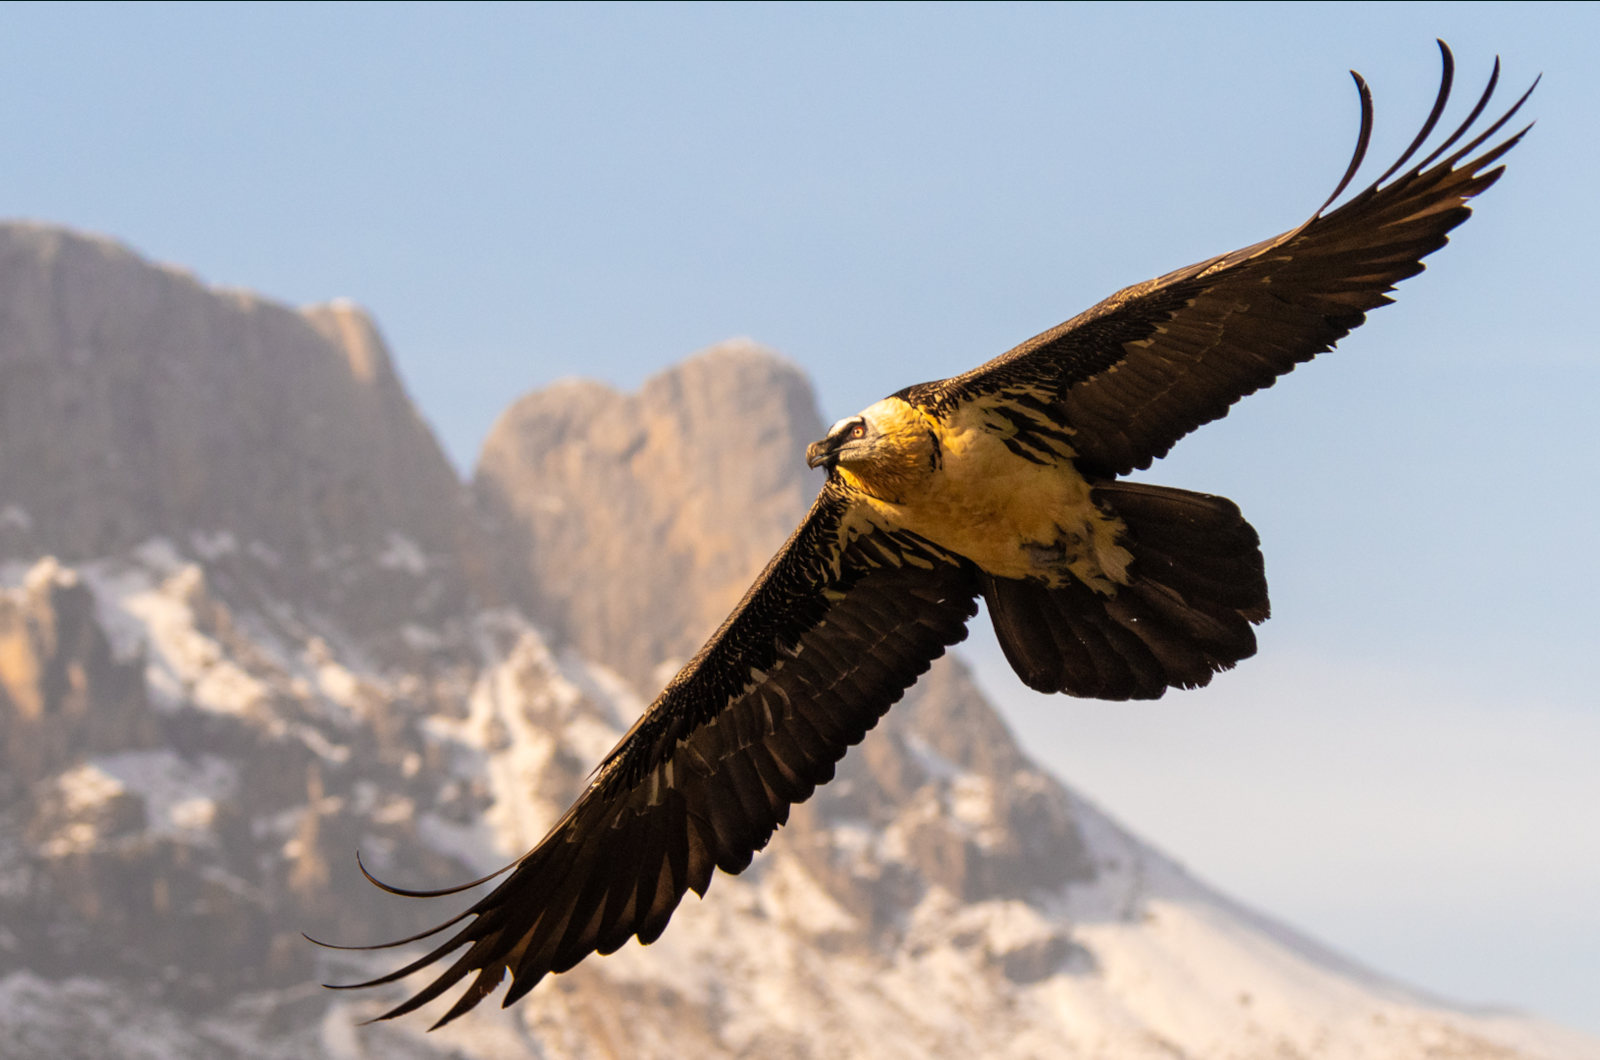 A bearded vulture fills the frame with tendrel feathers curled. Photo taken on our Photography Holiday Spain